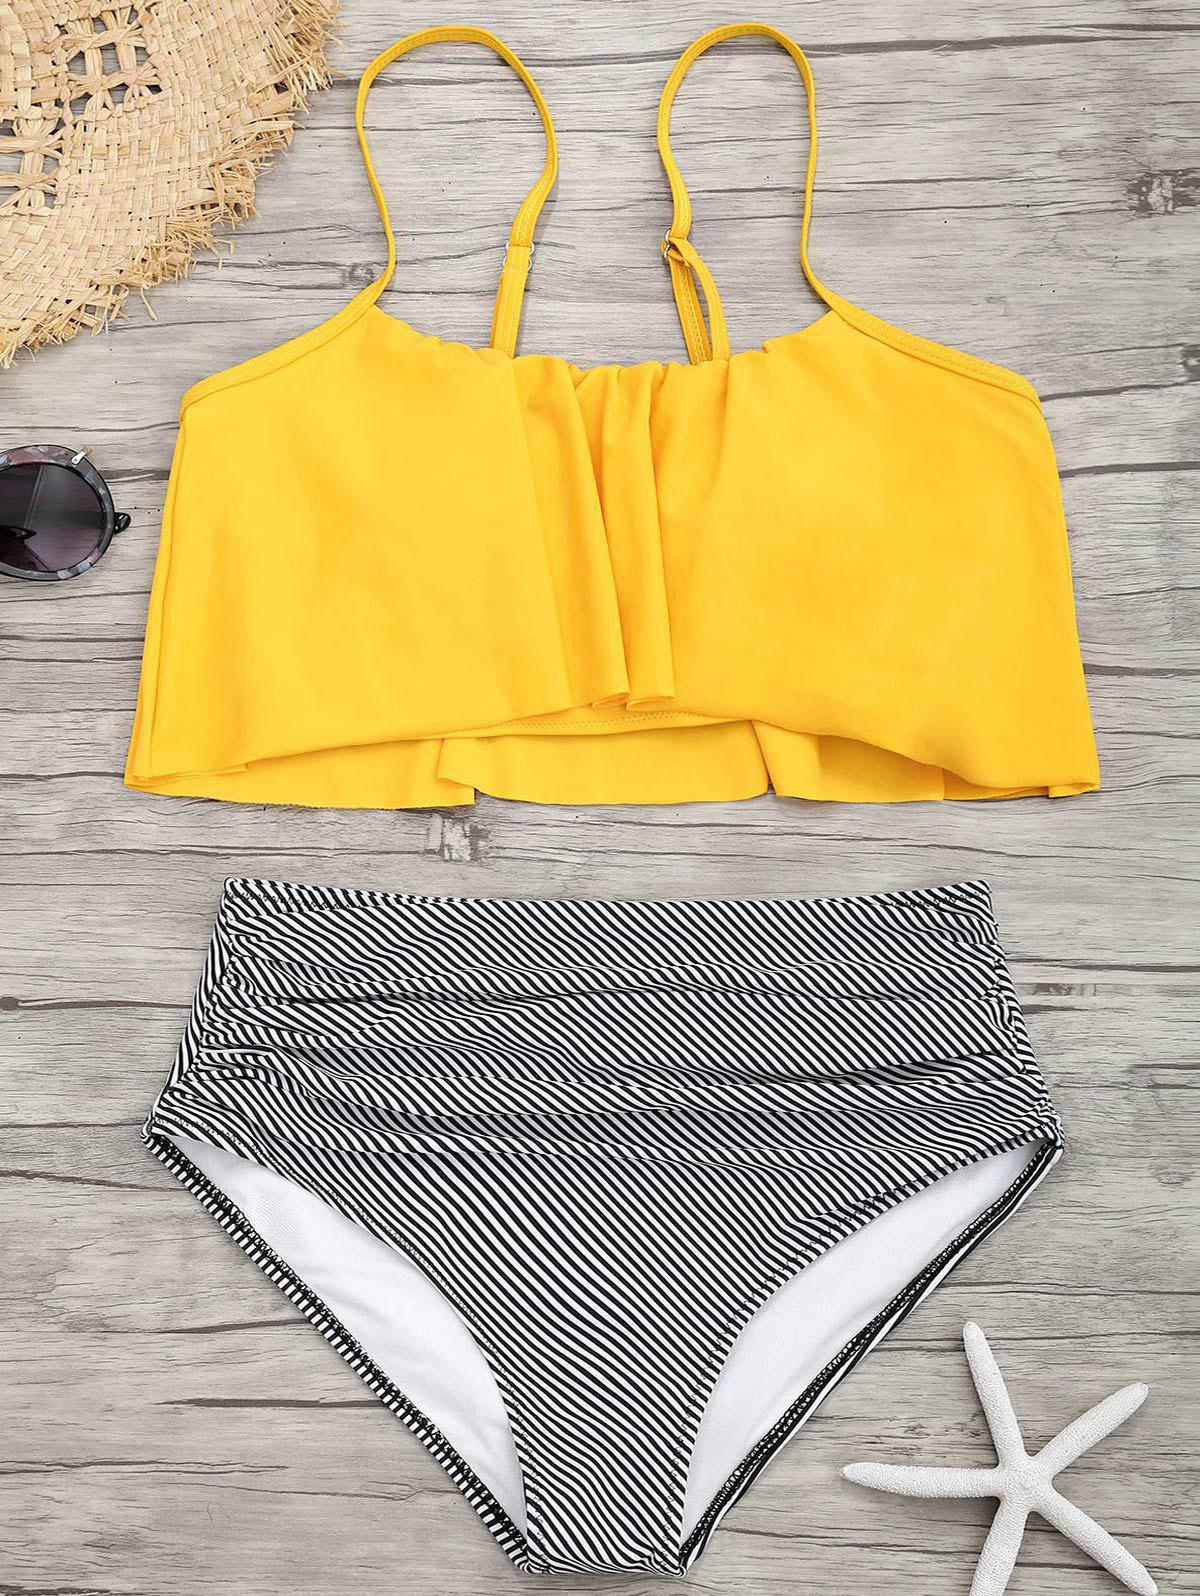 Spaghetti Strap Flounce Striped Bikini SetWOMEN<br><br>Size: L; Color: YELLOW; Swimwear Type: Bikini; Bikini Type: Flounce Bikini; Gender: For Women; Material: Nylon,Spandex; Bra Style: Padded; Support Type: Wire Free; Neckline: Spaghetti Straps; Pattern Type: Striped; Waist: High Waisted; Elasticity: Elastic; Weight: 0.2900kg; Package Contents: 1 x Bra  1 x Bottom;